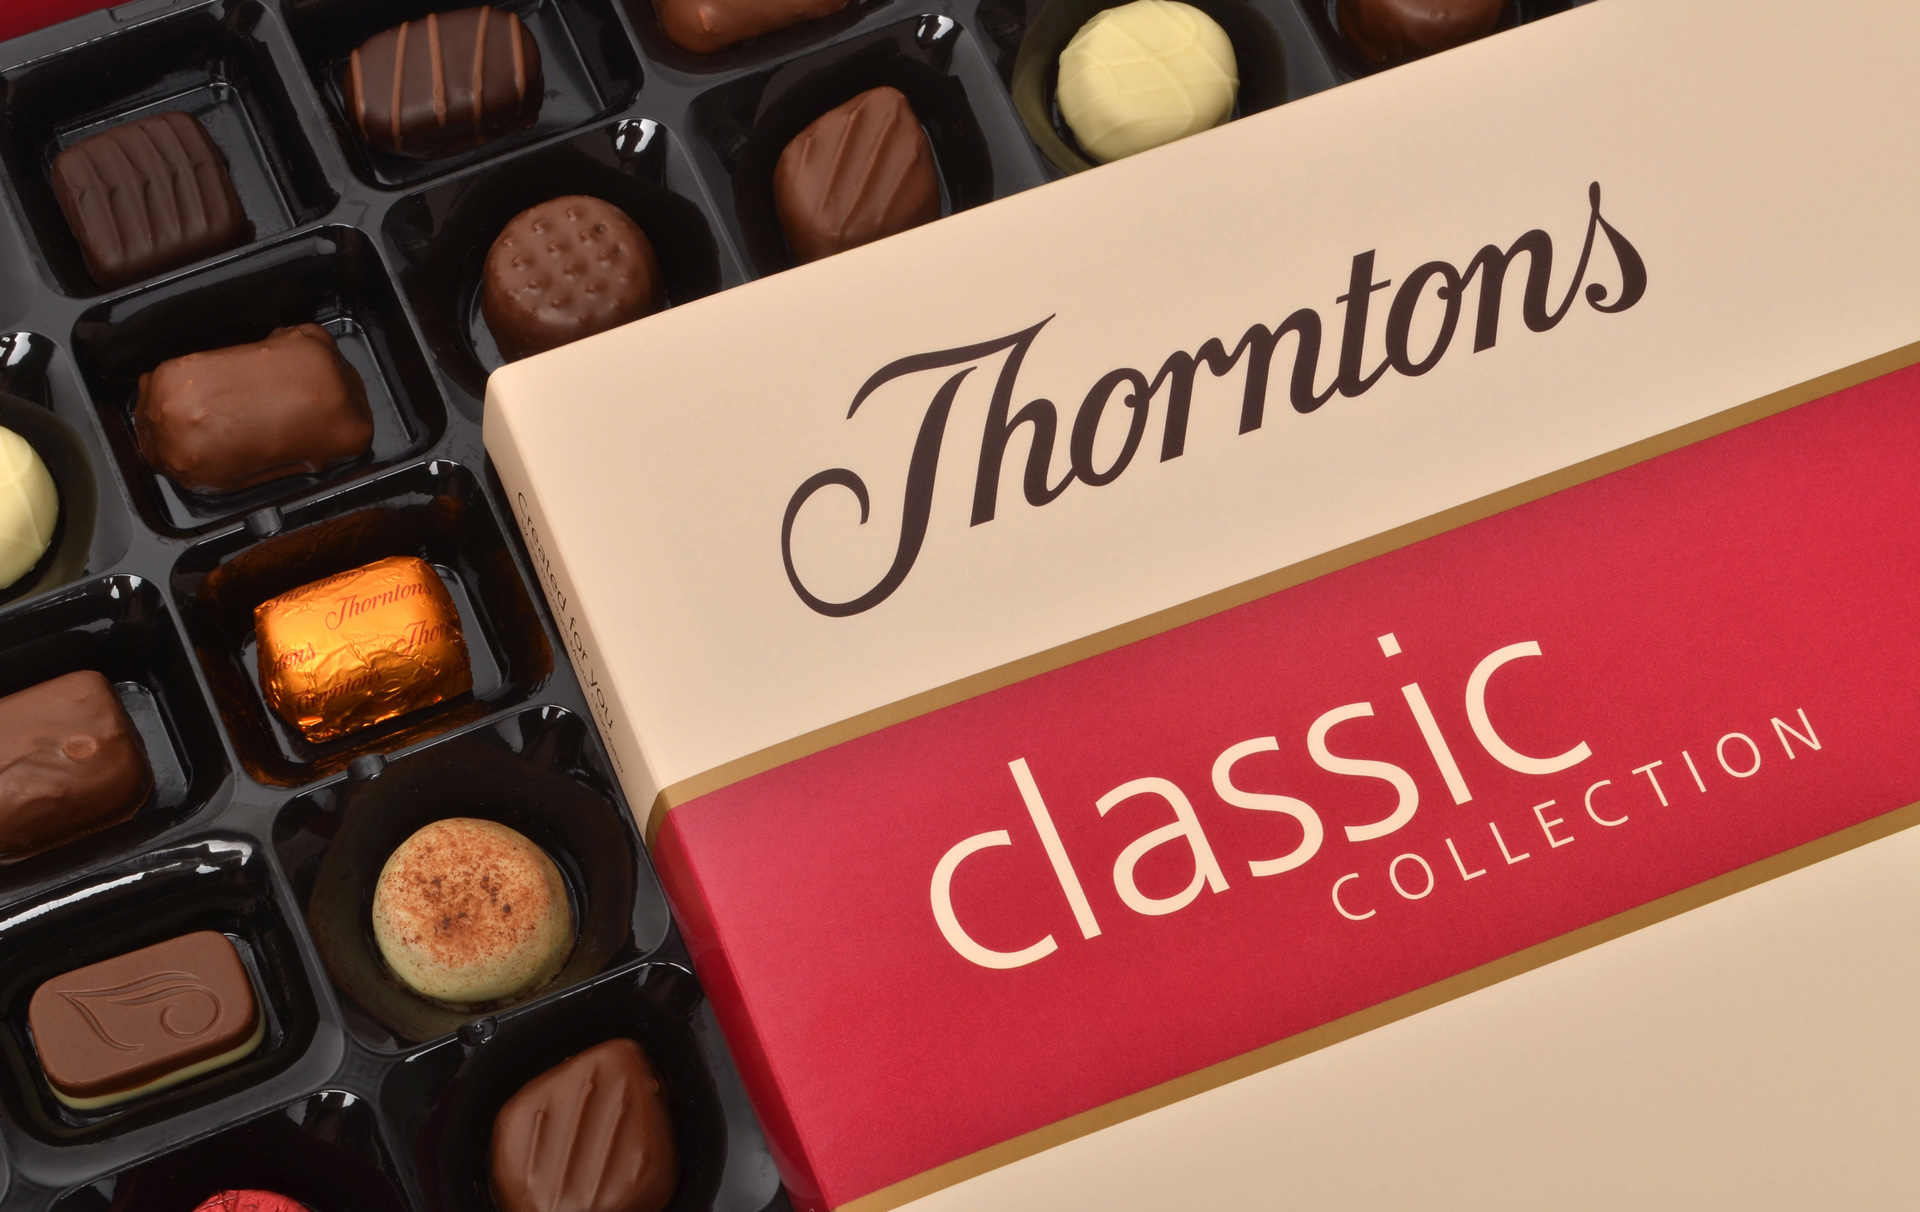 Don't miss out on snapping up the best Thorntons chocolates that make a perfect gift